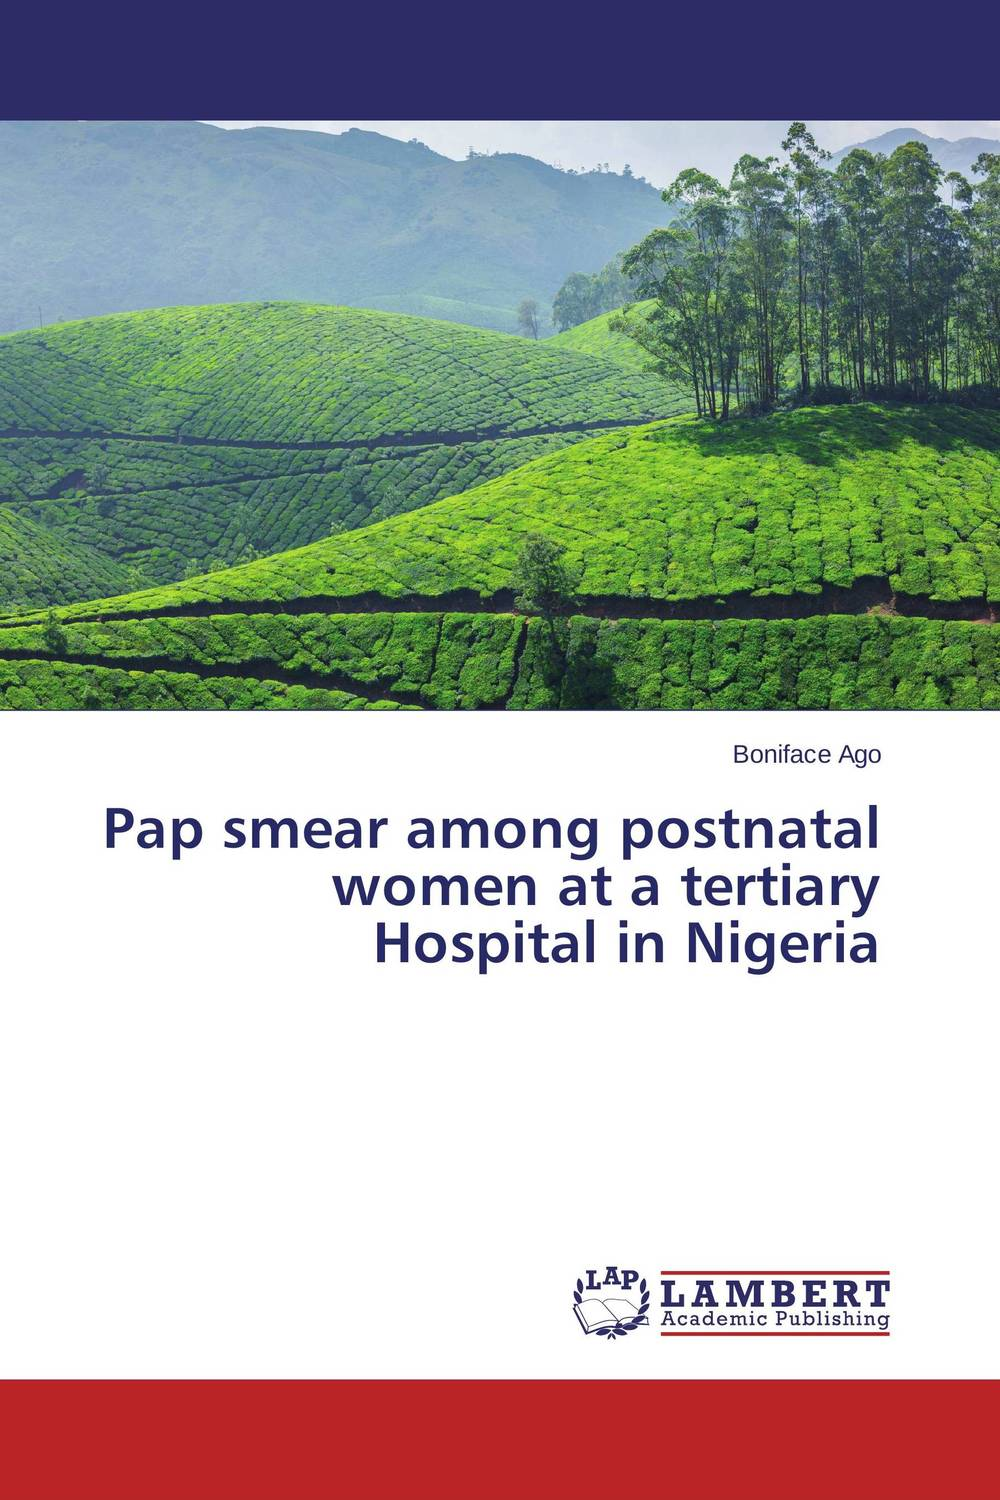 Pap smear among postnatal women at a tertiary Hospital in Nigeria late stage diagnosis of cervical cancer